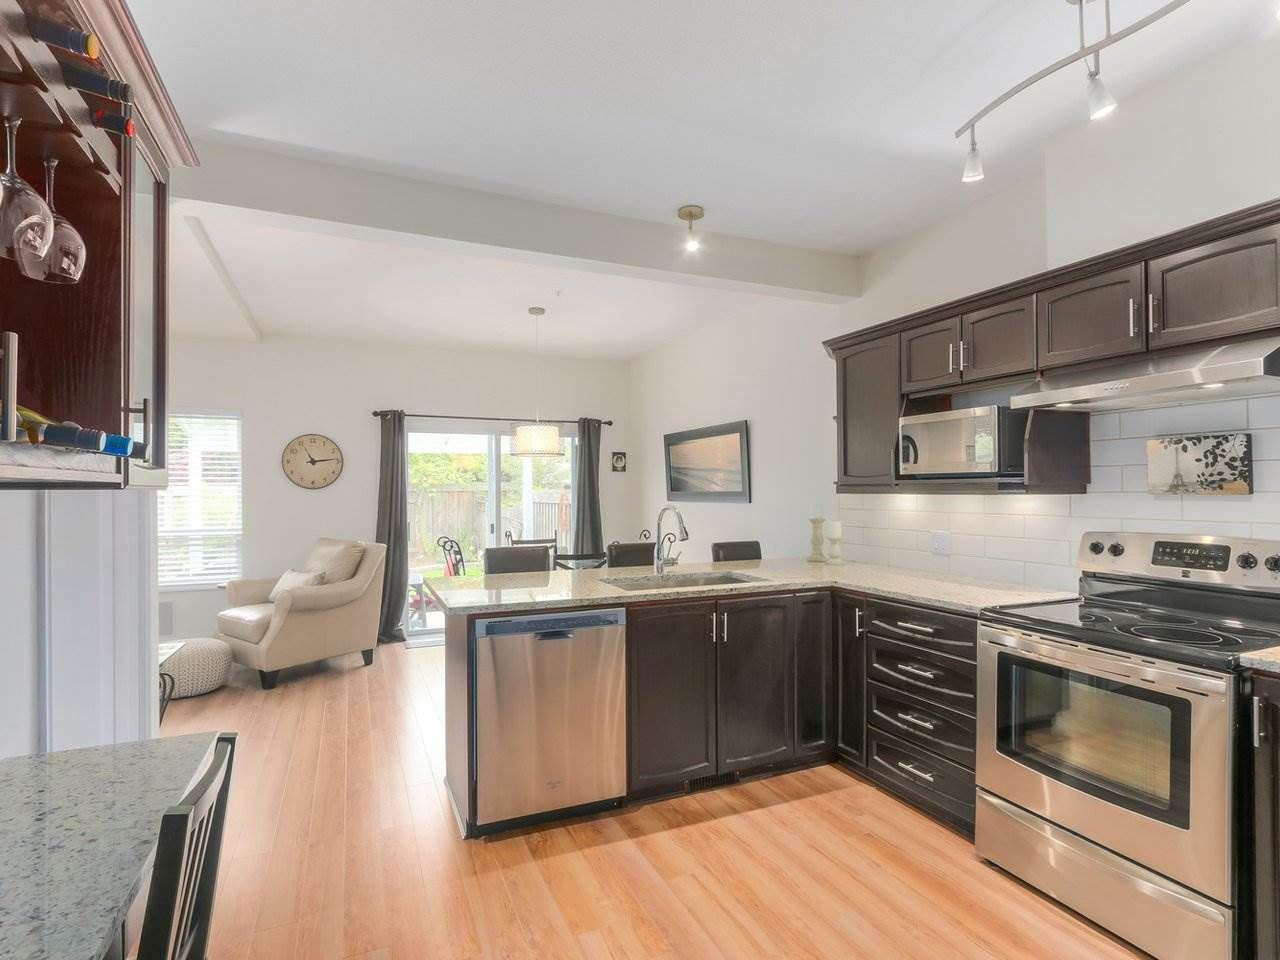 """Photo 6: Photos: 21 998 RIVERSIDE Drive in Port Coquitlam: Riverwood Townhouse for sale in """"PARKSIDE PLACE"""" : MLS®# R2371728"""